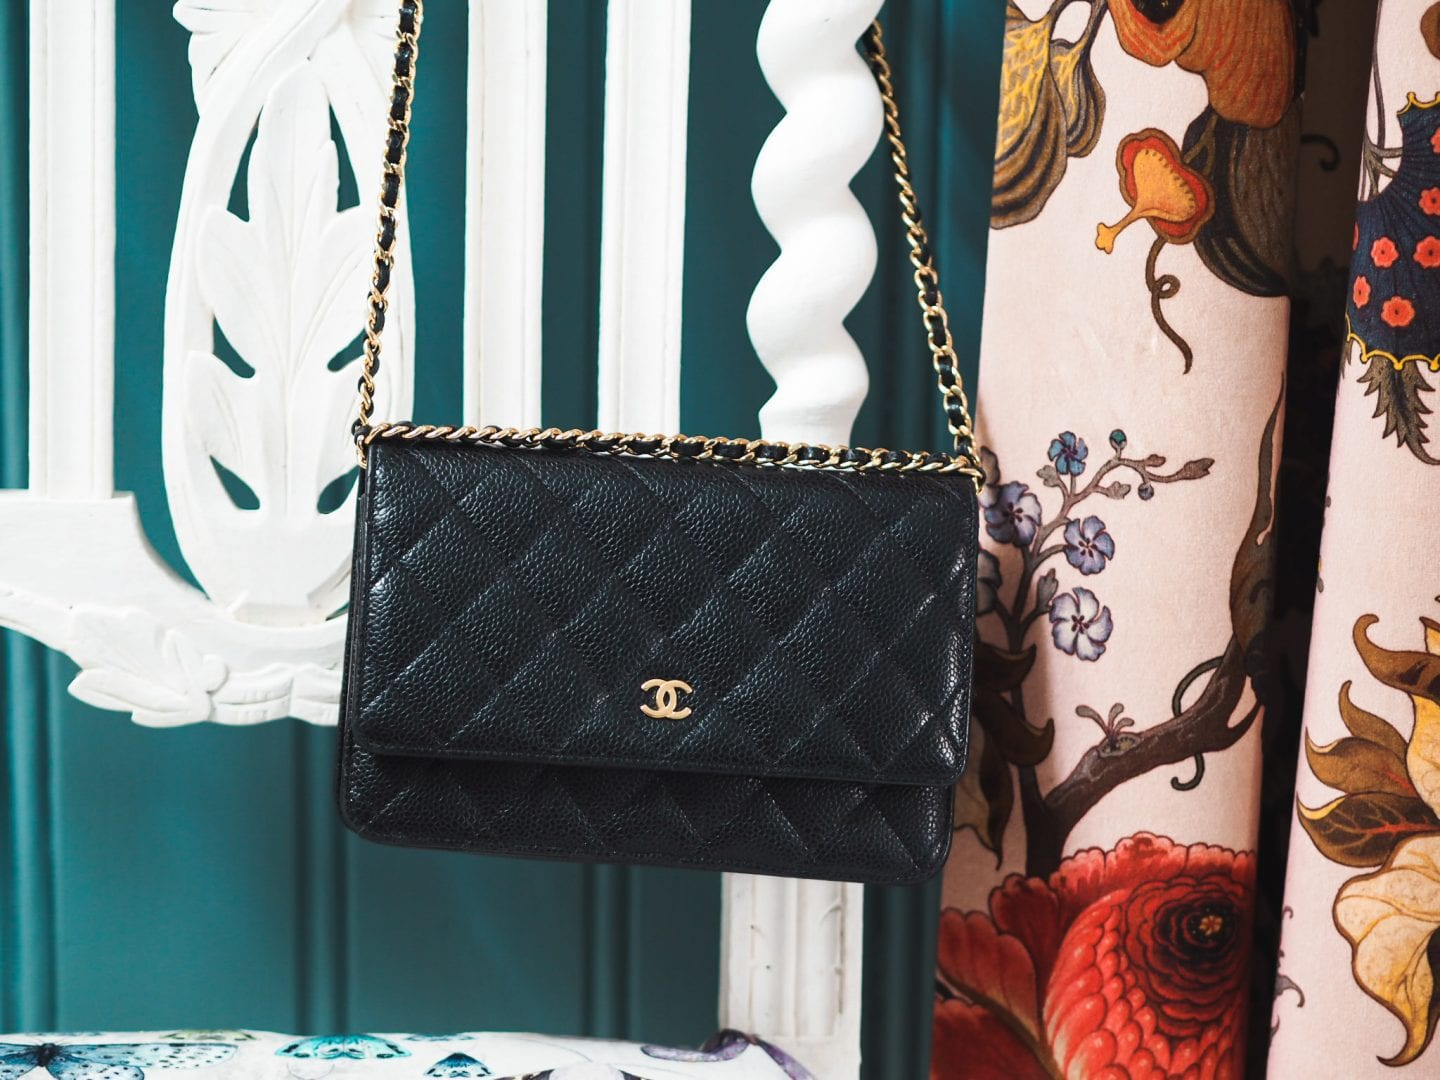 FIVE Reasons Why You Should Buy A Preloved Chanel Bag!